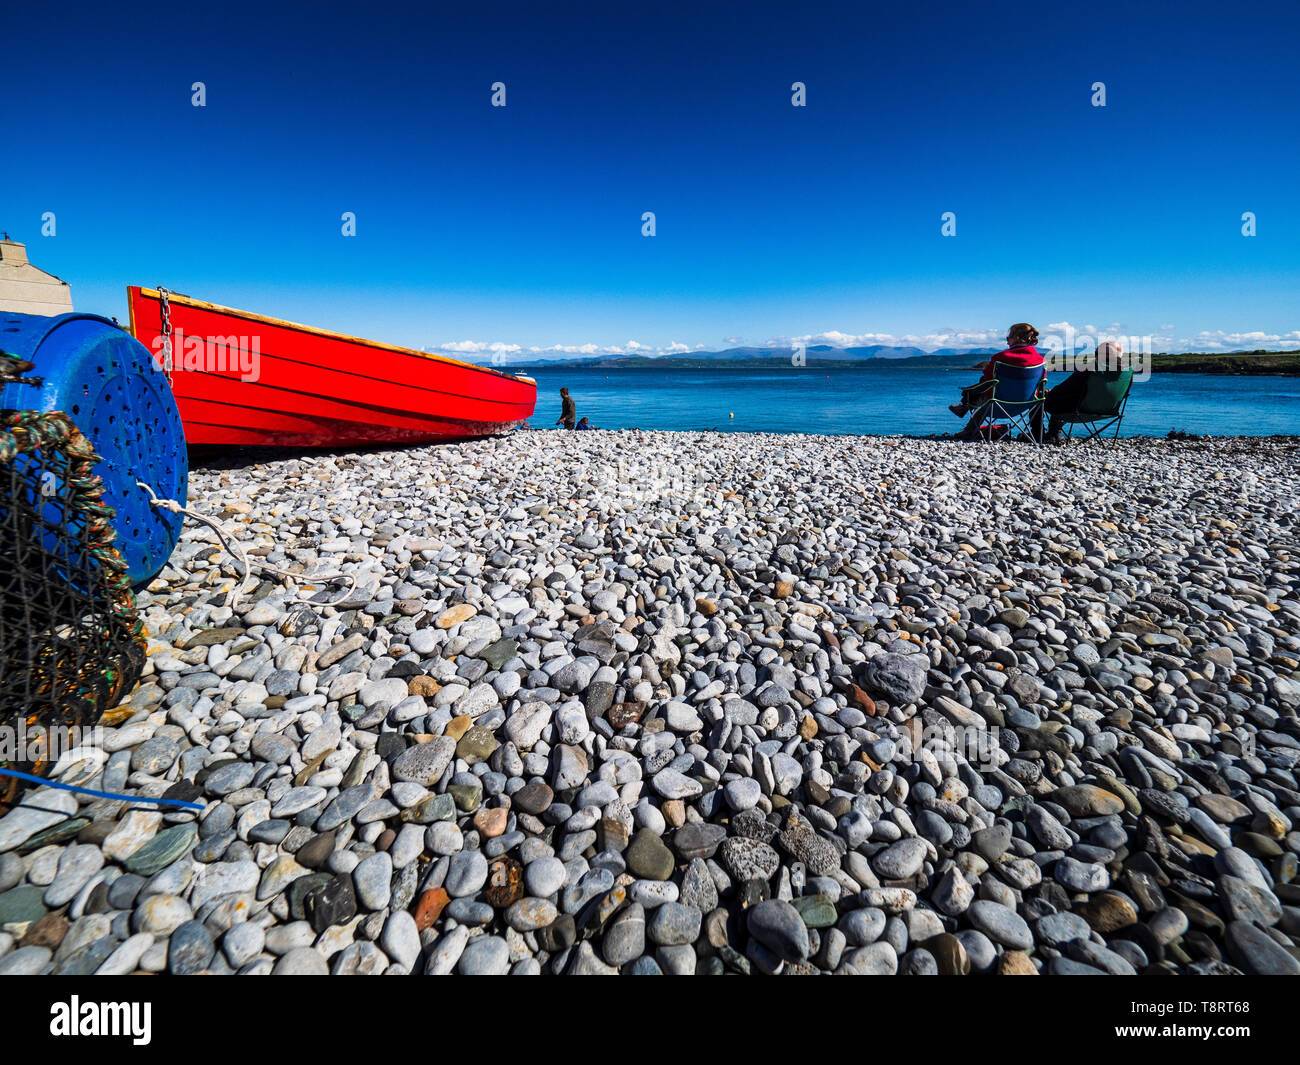 Staycation - British Beach Holidays - Anglesey - shingle beach with red boat - Stock Image